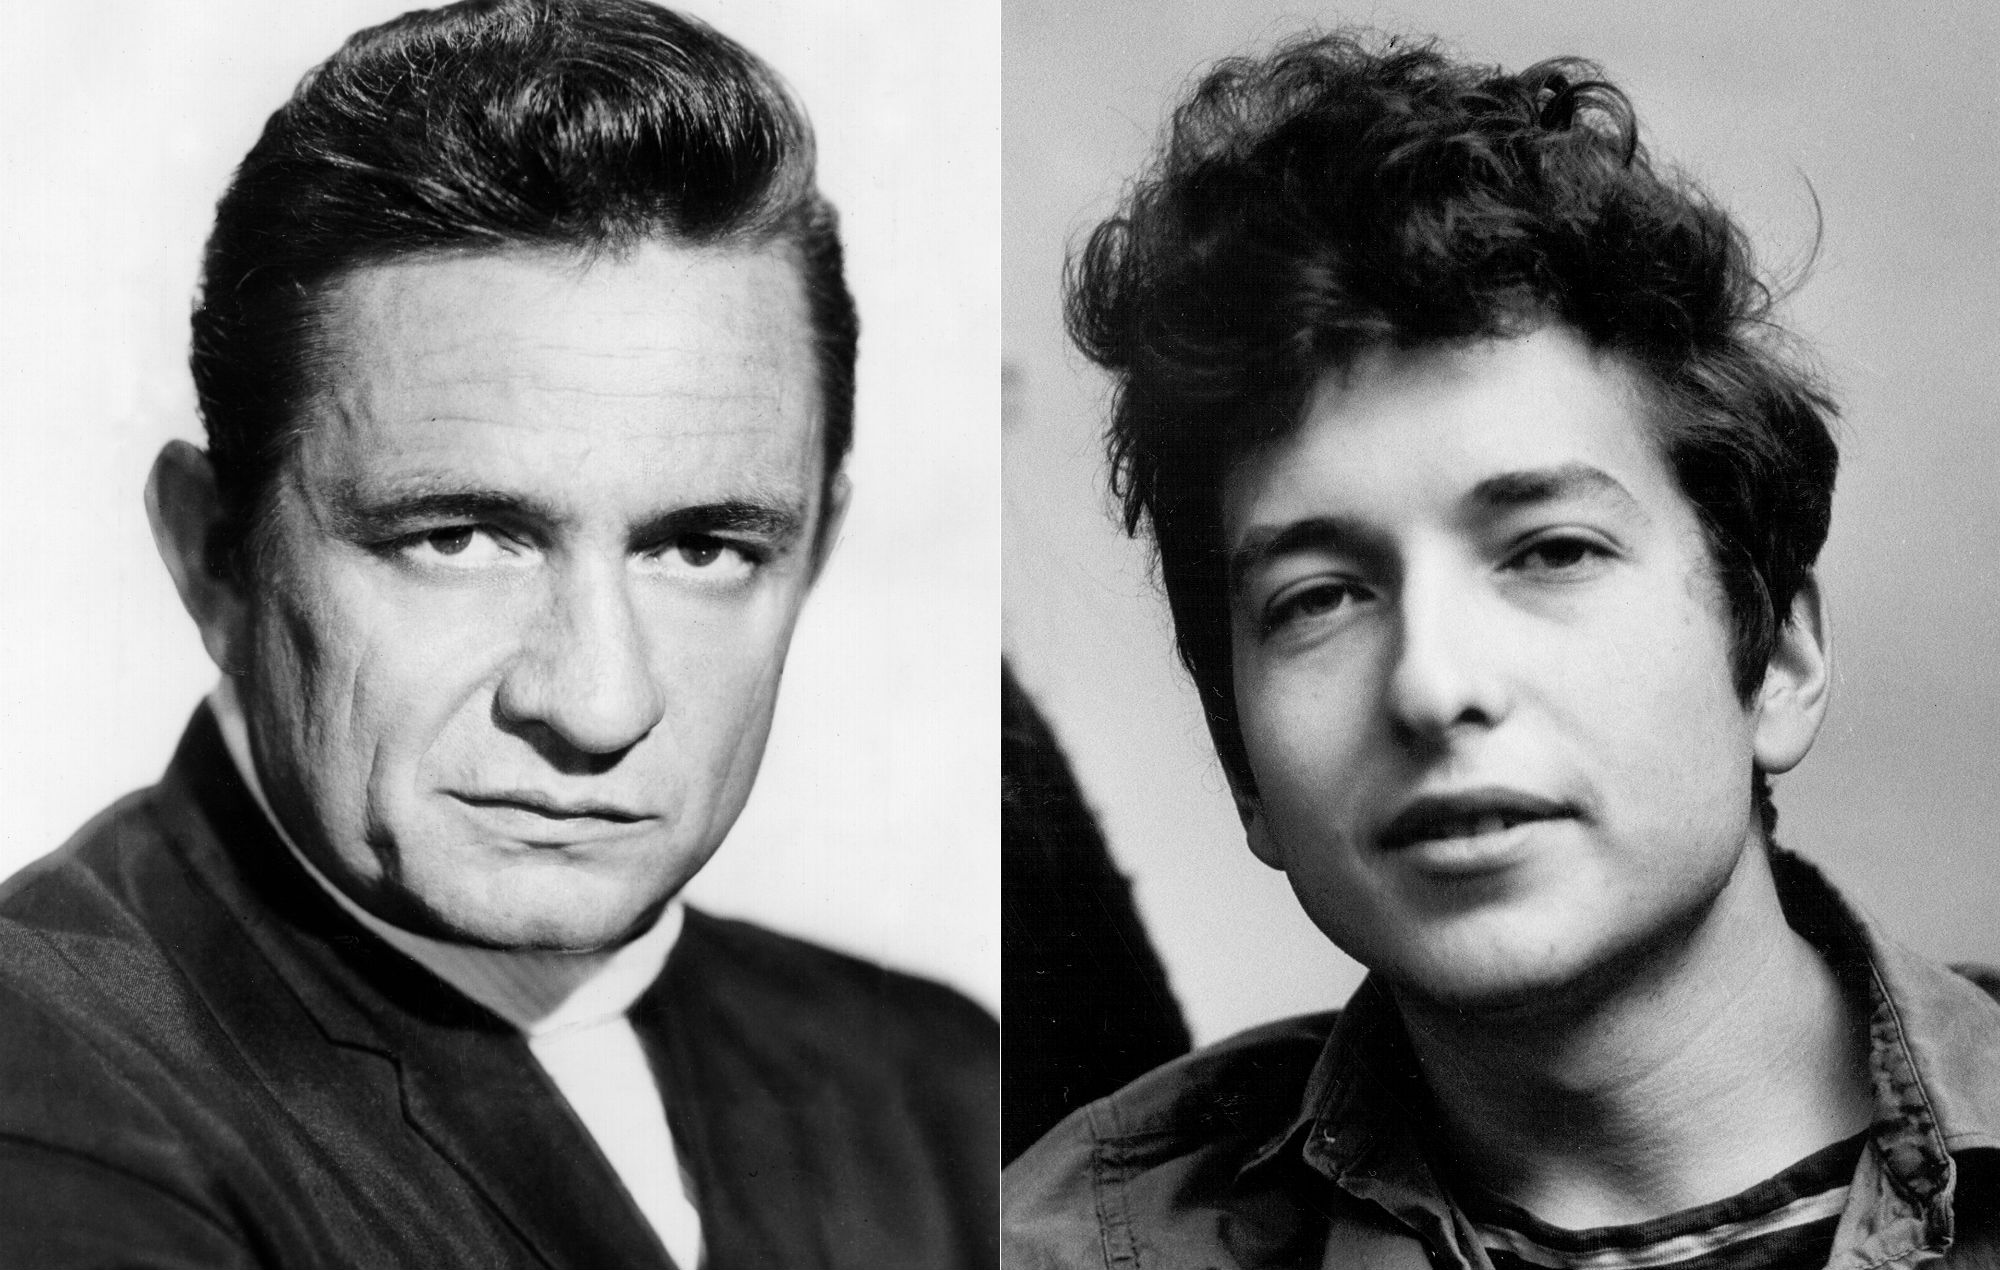 Listen to previously unreleased Bob Dylan and Johnny Cash demo 'Wanted Man'